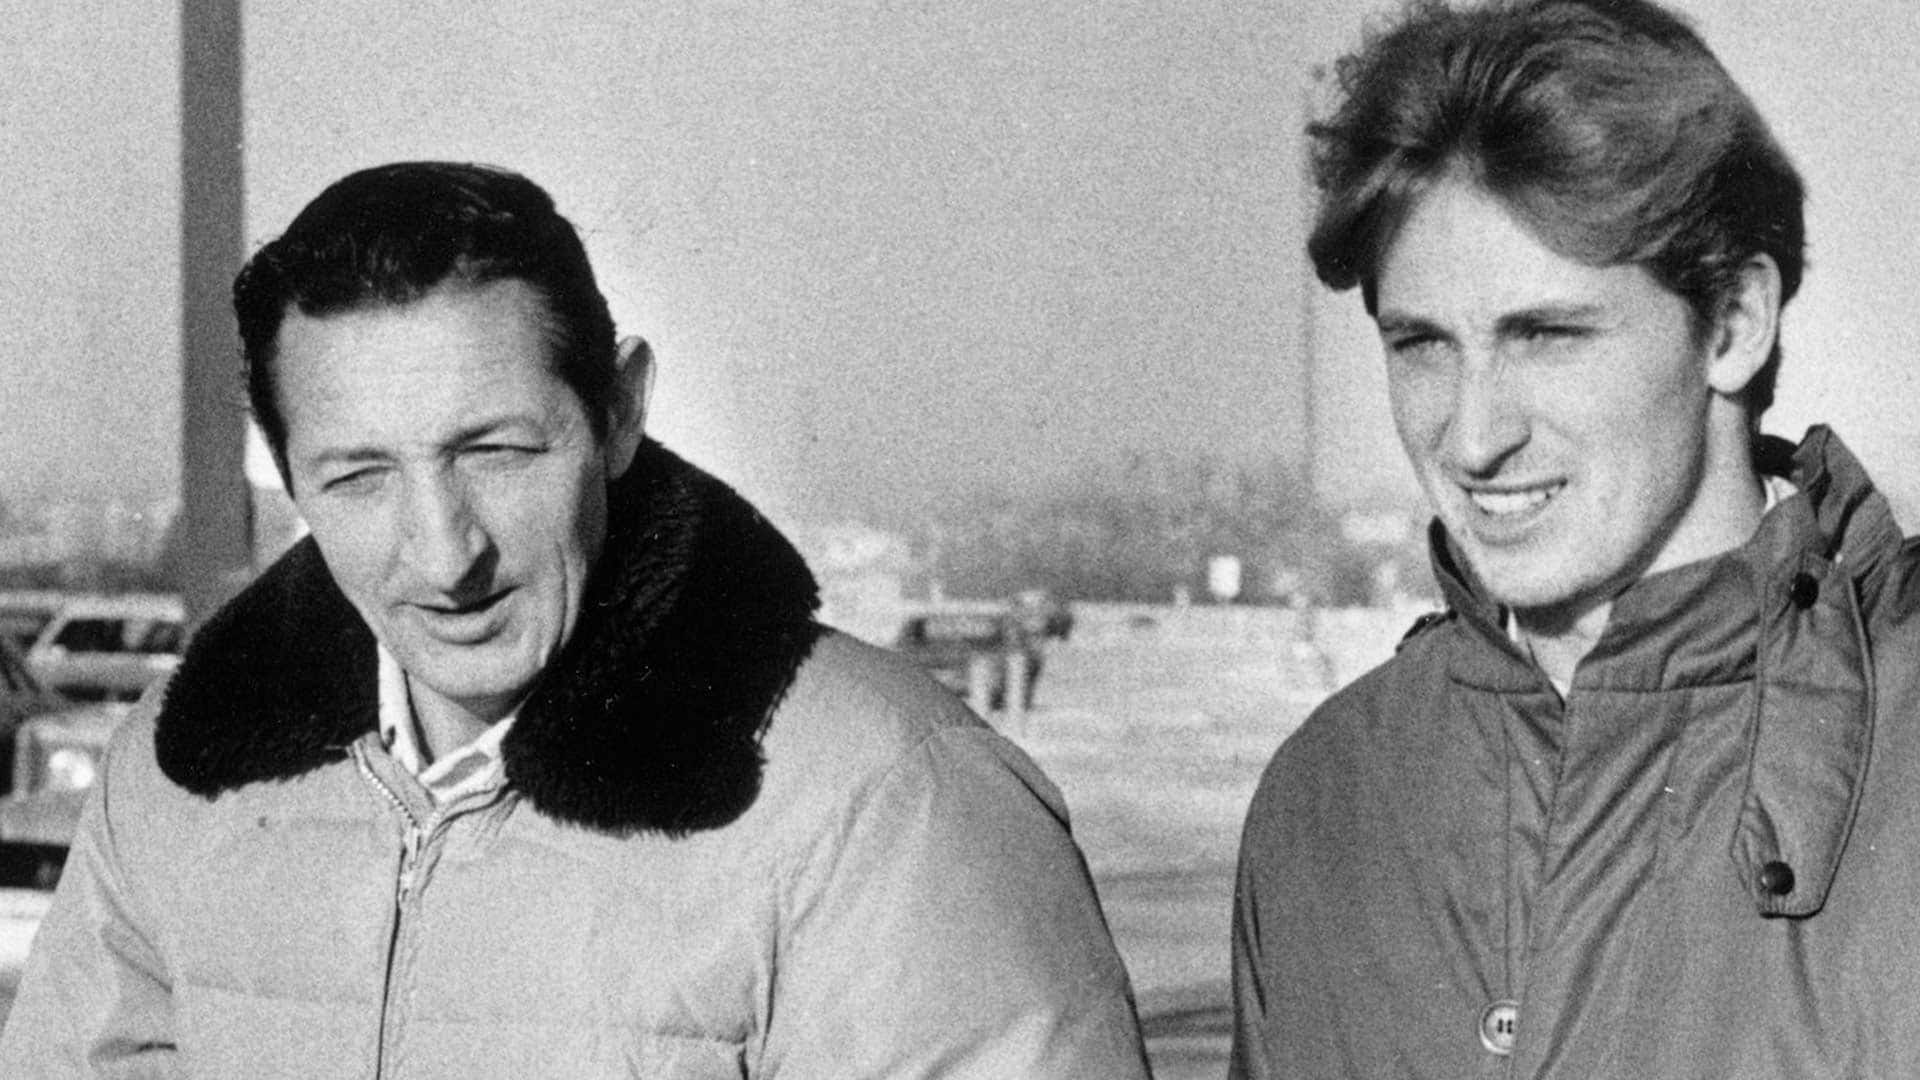 Remembering 'Canada's hockey dad' Walter Gretzky The National17 hours ago2:03